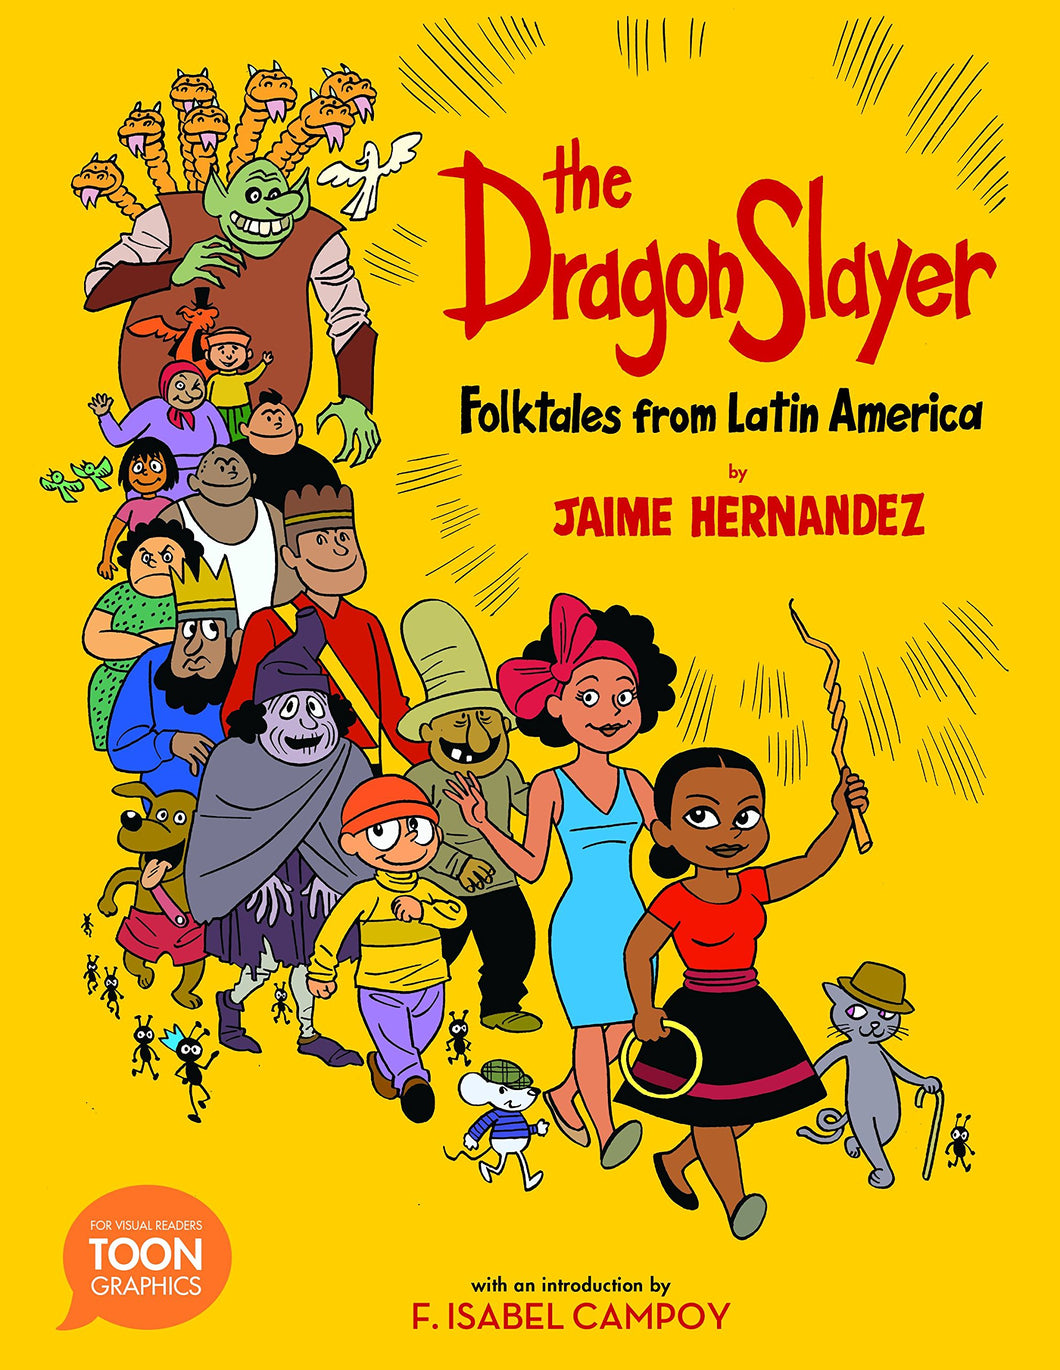 The Dragon Slayer: Folktales from Latin America by Jaime Hernandez